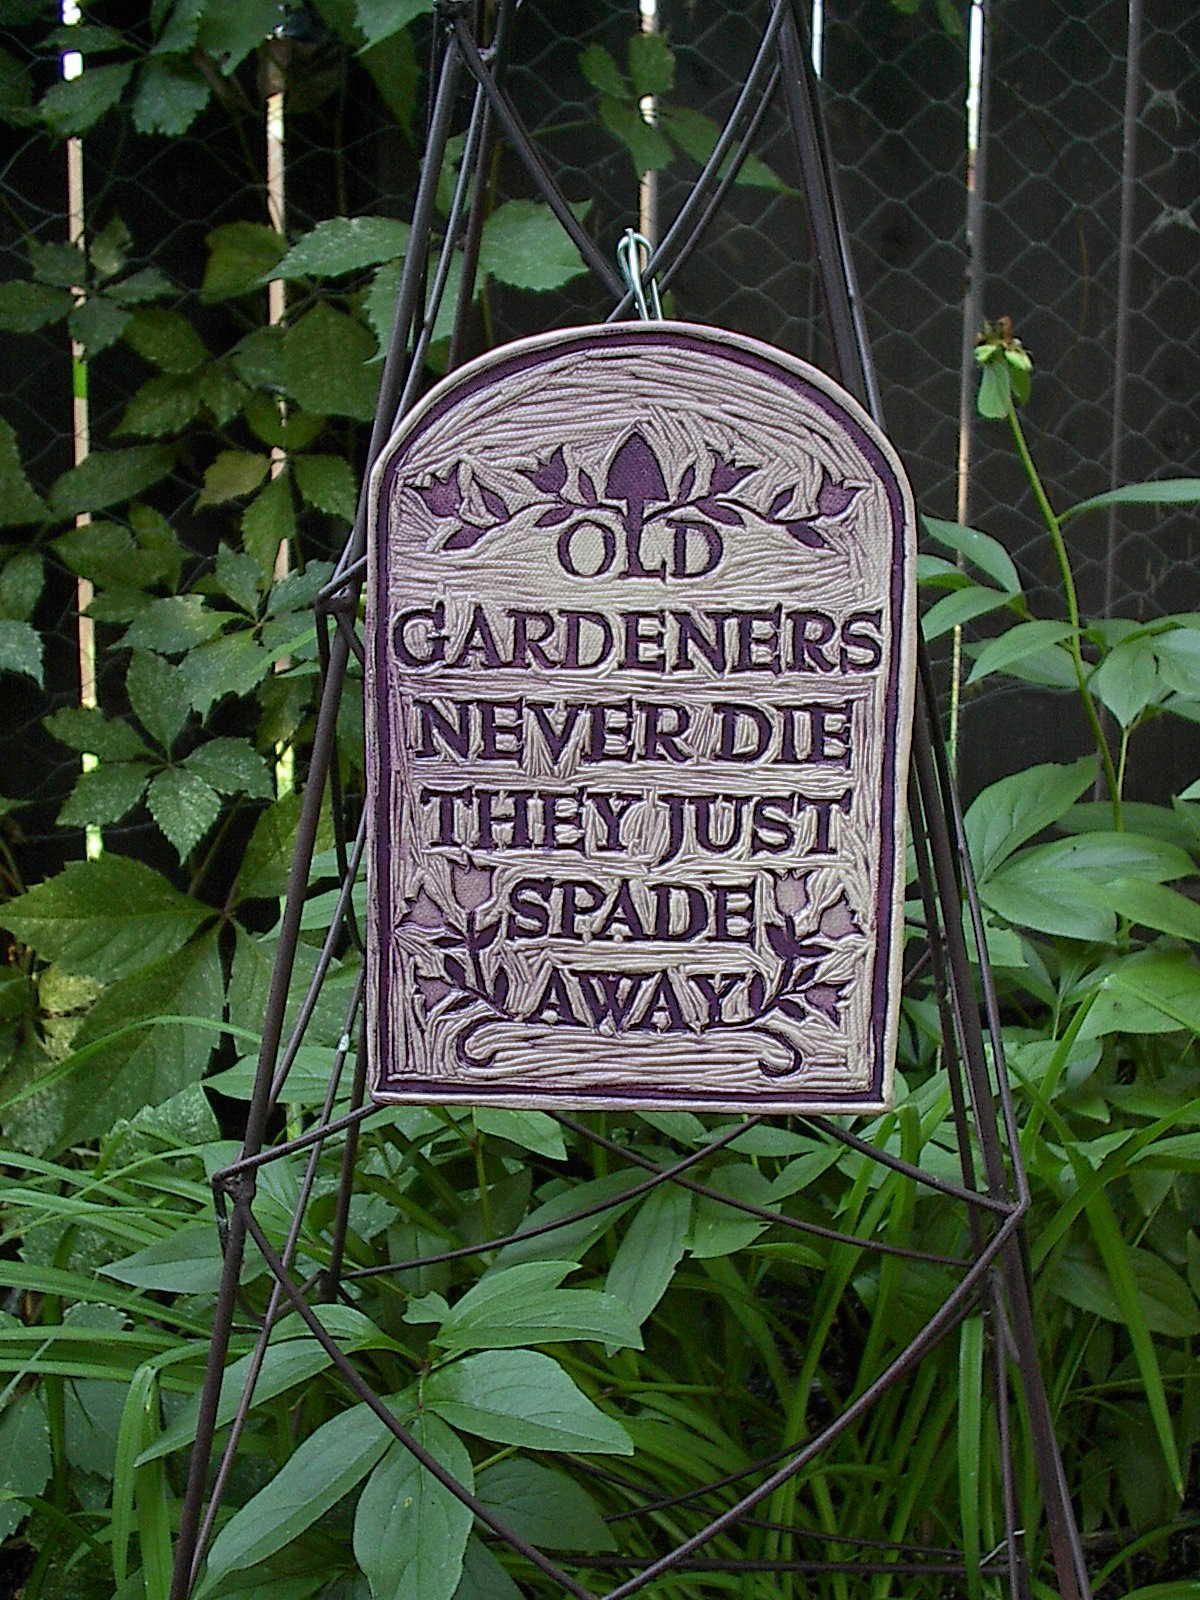 Old Gardeners art tile